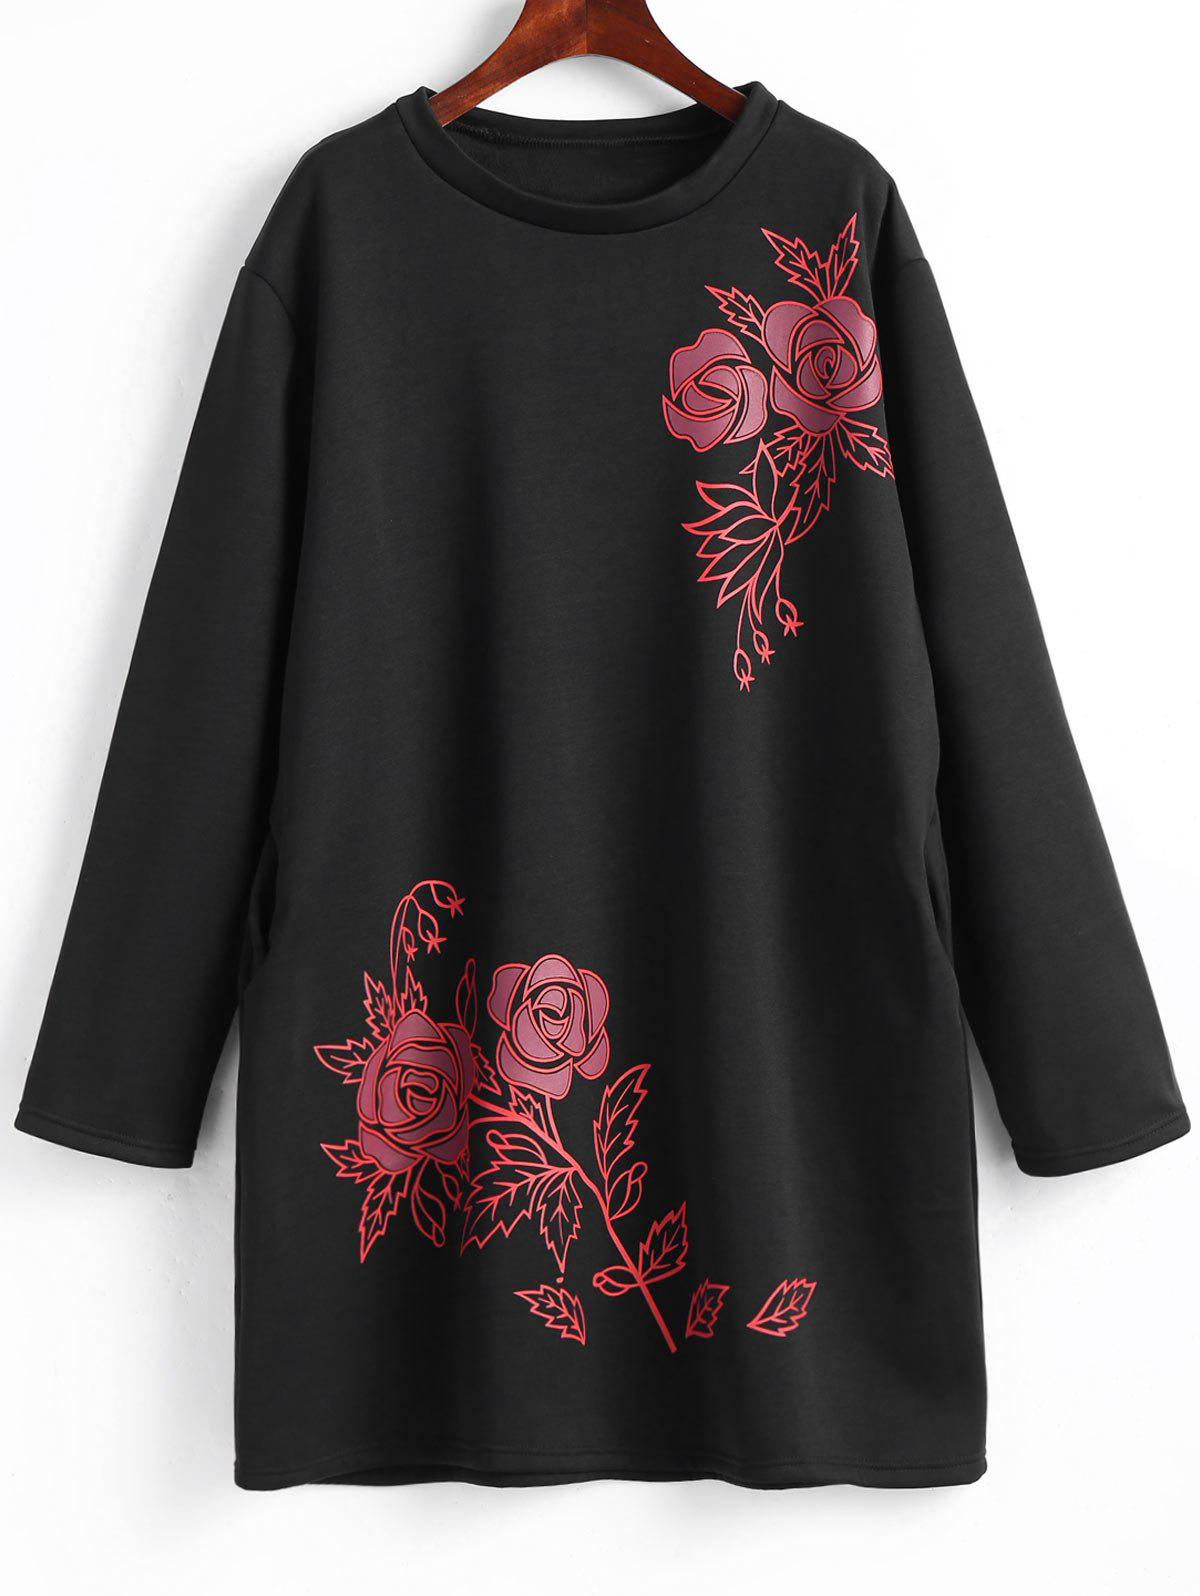 Floral Fleece Lined Plus Size Sweatshirt Dress - BLACK 3XL